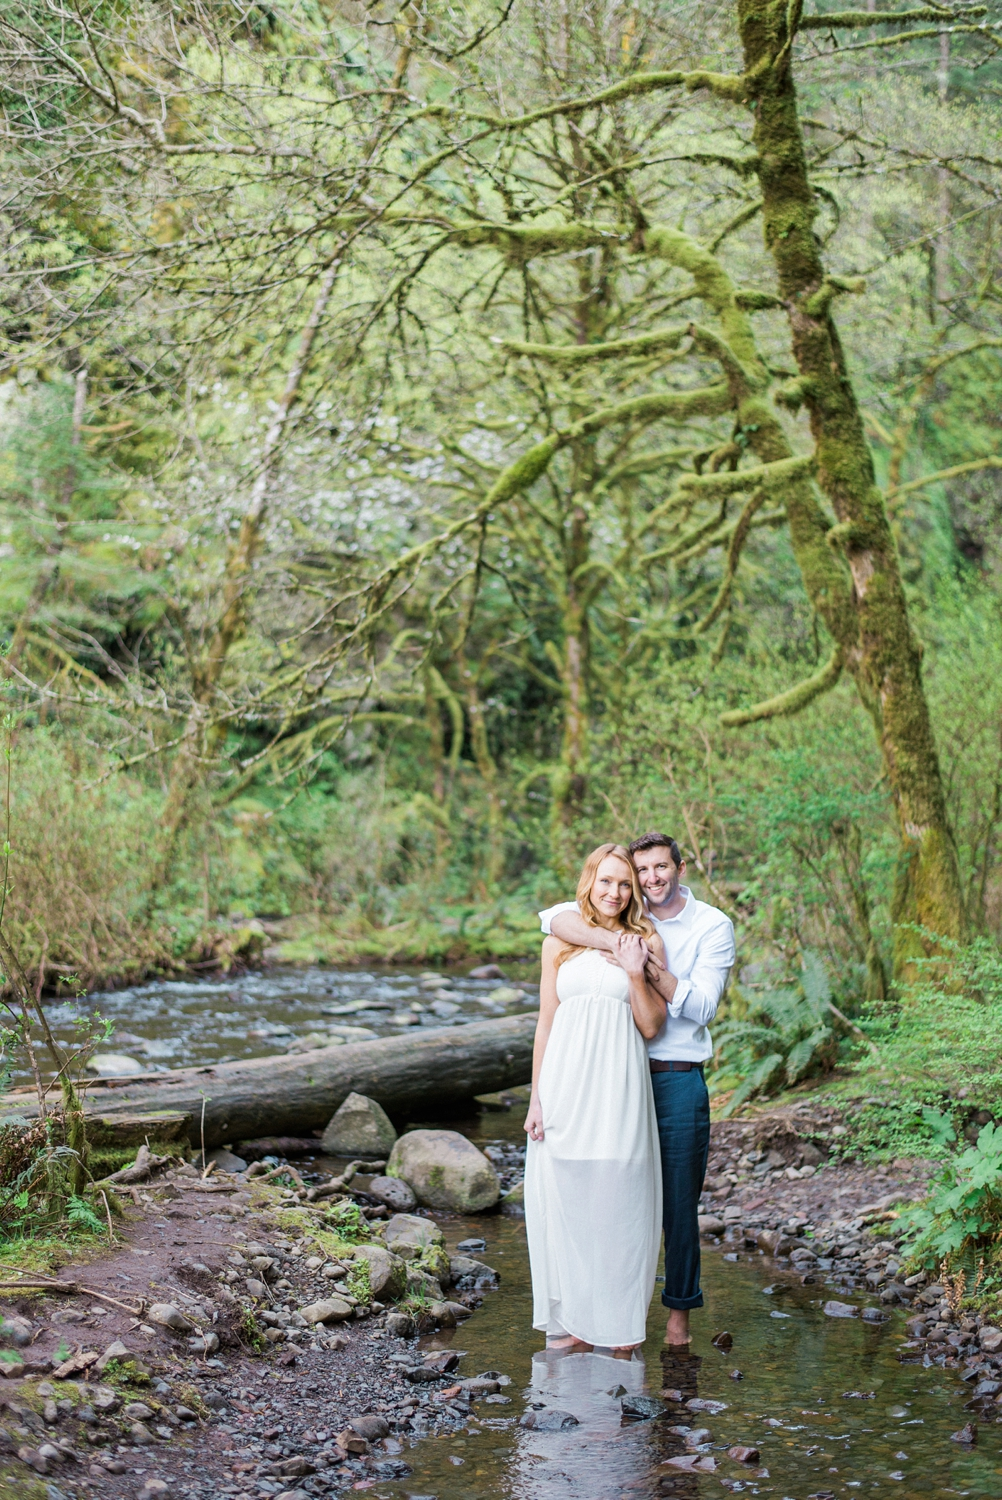 portland-engagement-columbia-river-gorge-oneonta-latourell-waterfall-shelley-marie-photo-160_cr.jpg